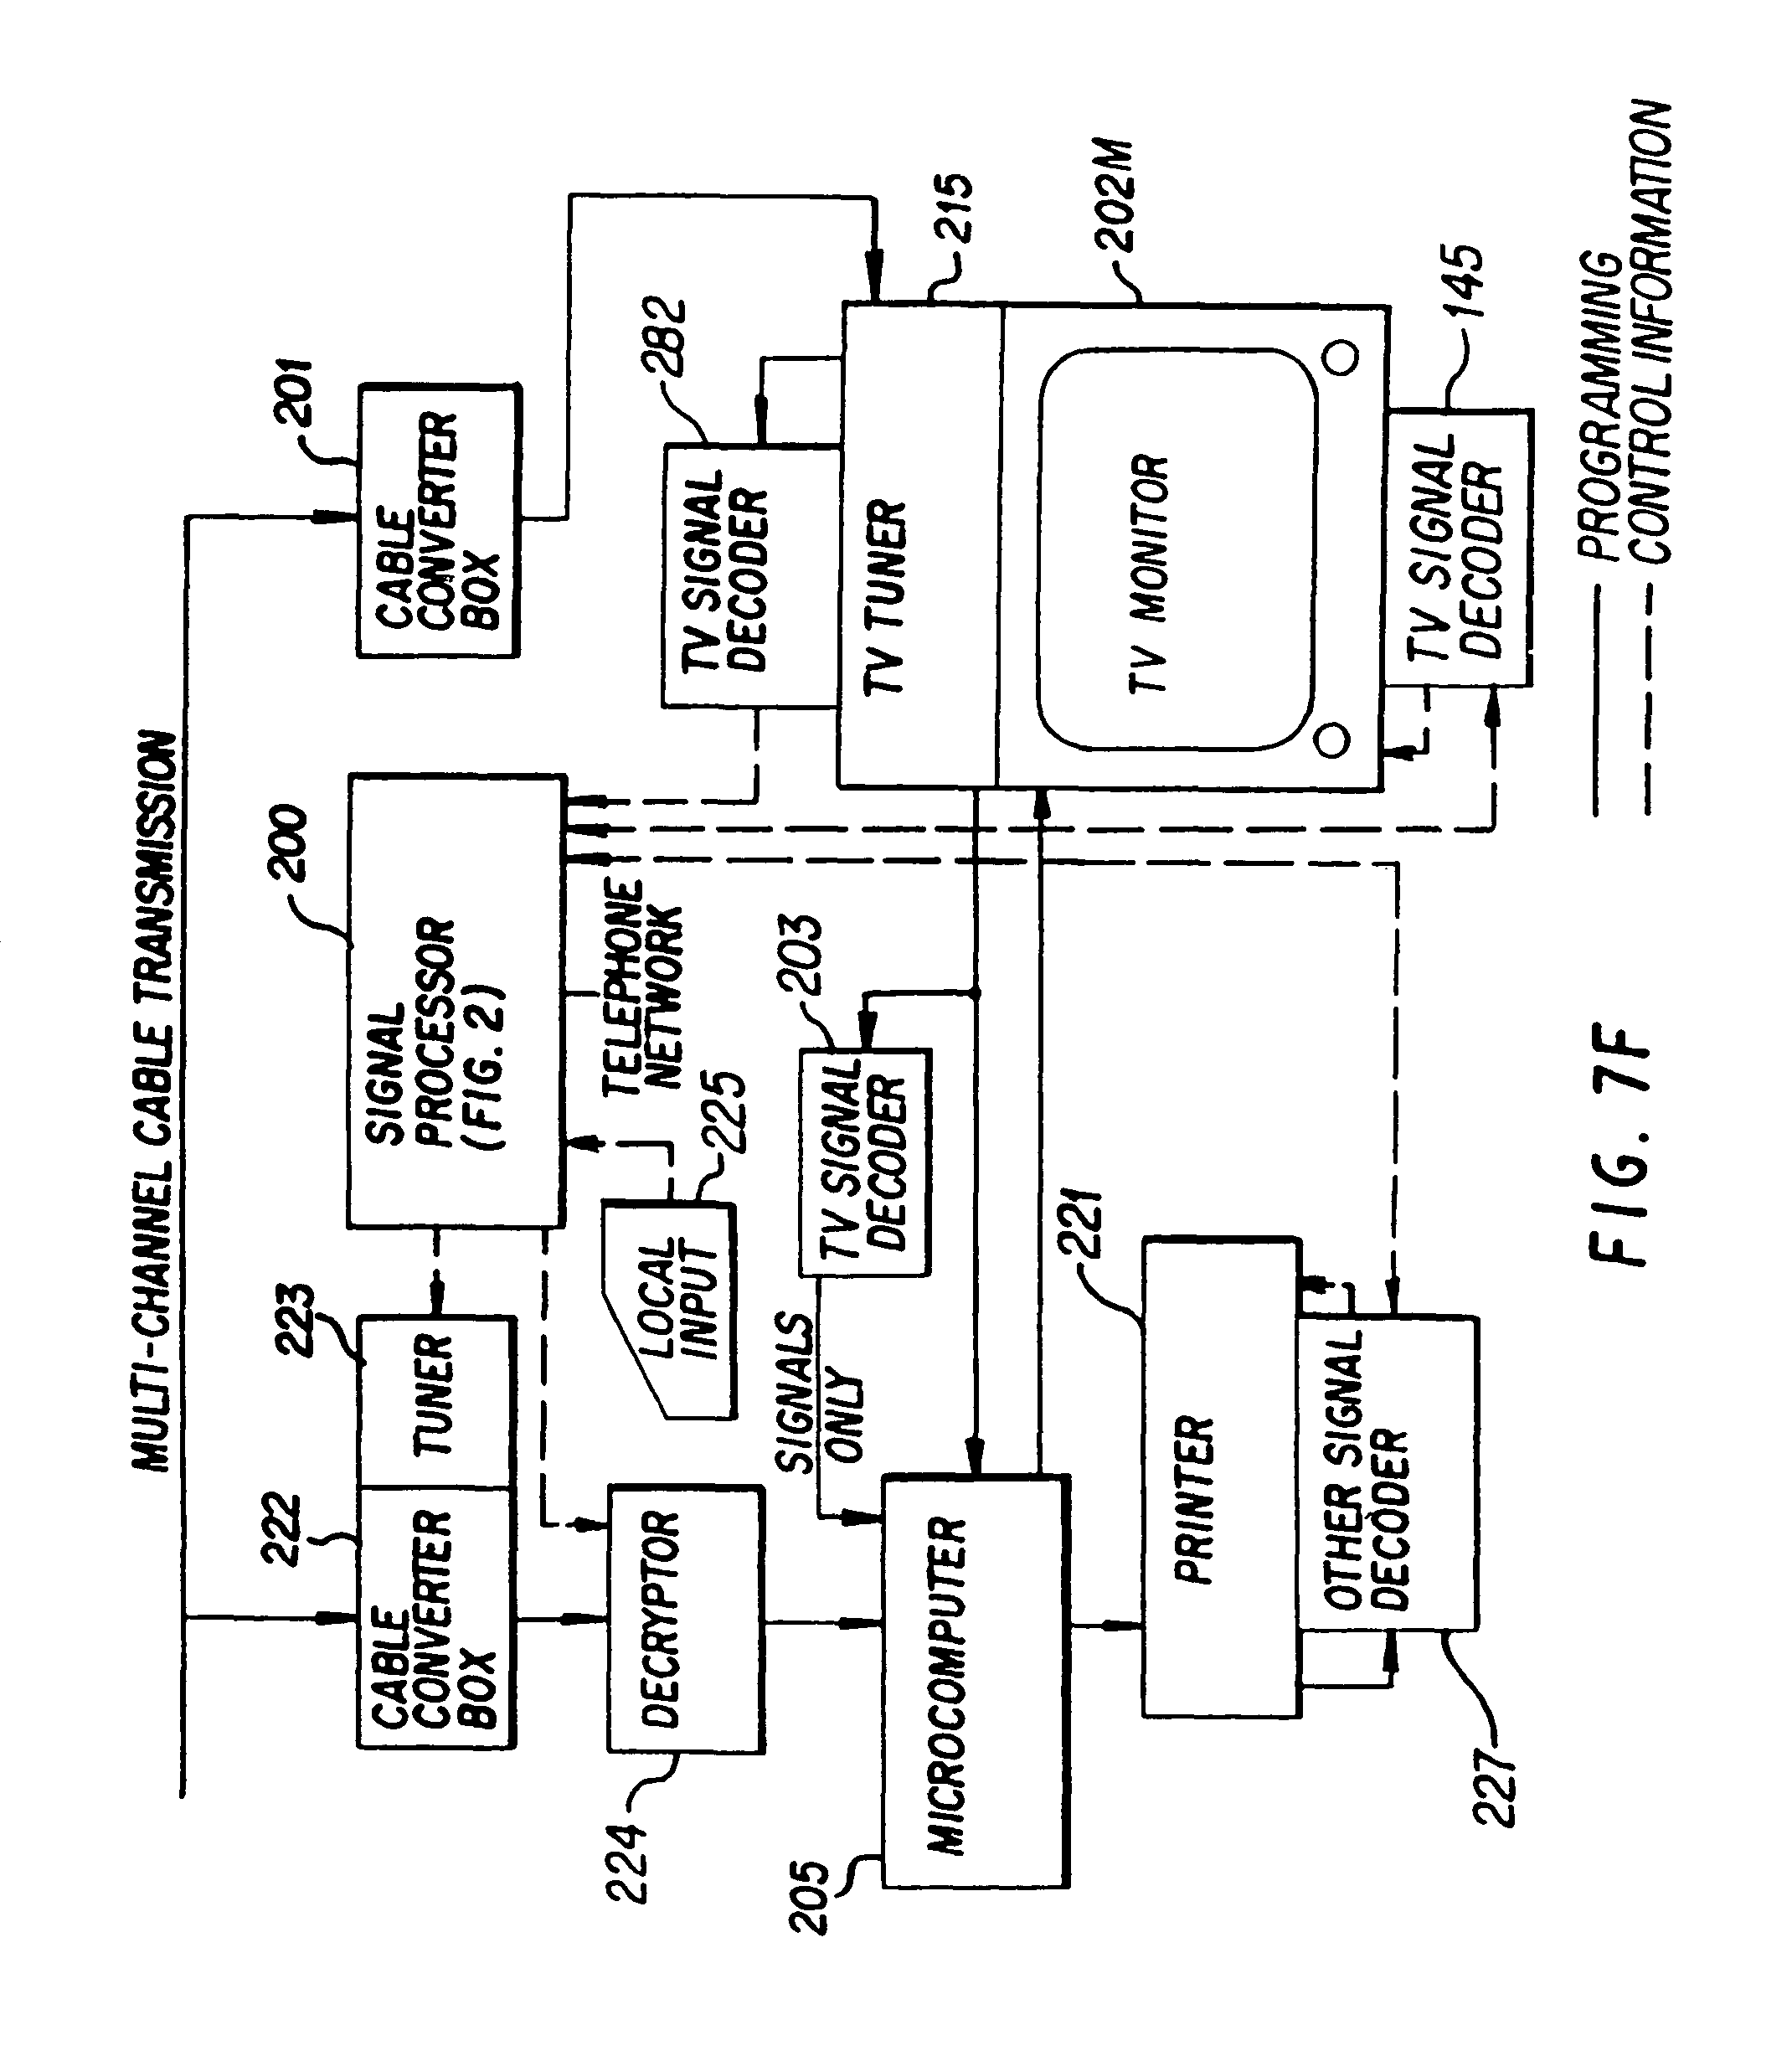 Us7861263b1 Signal Processing Apparatus And Methods Google Patents Ingersoll Case 222 Wiring Diagram